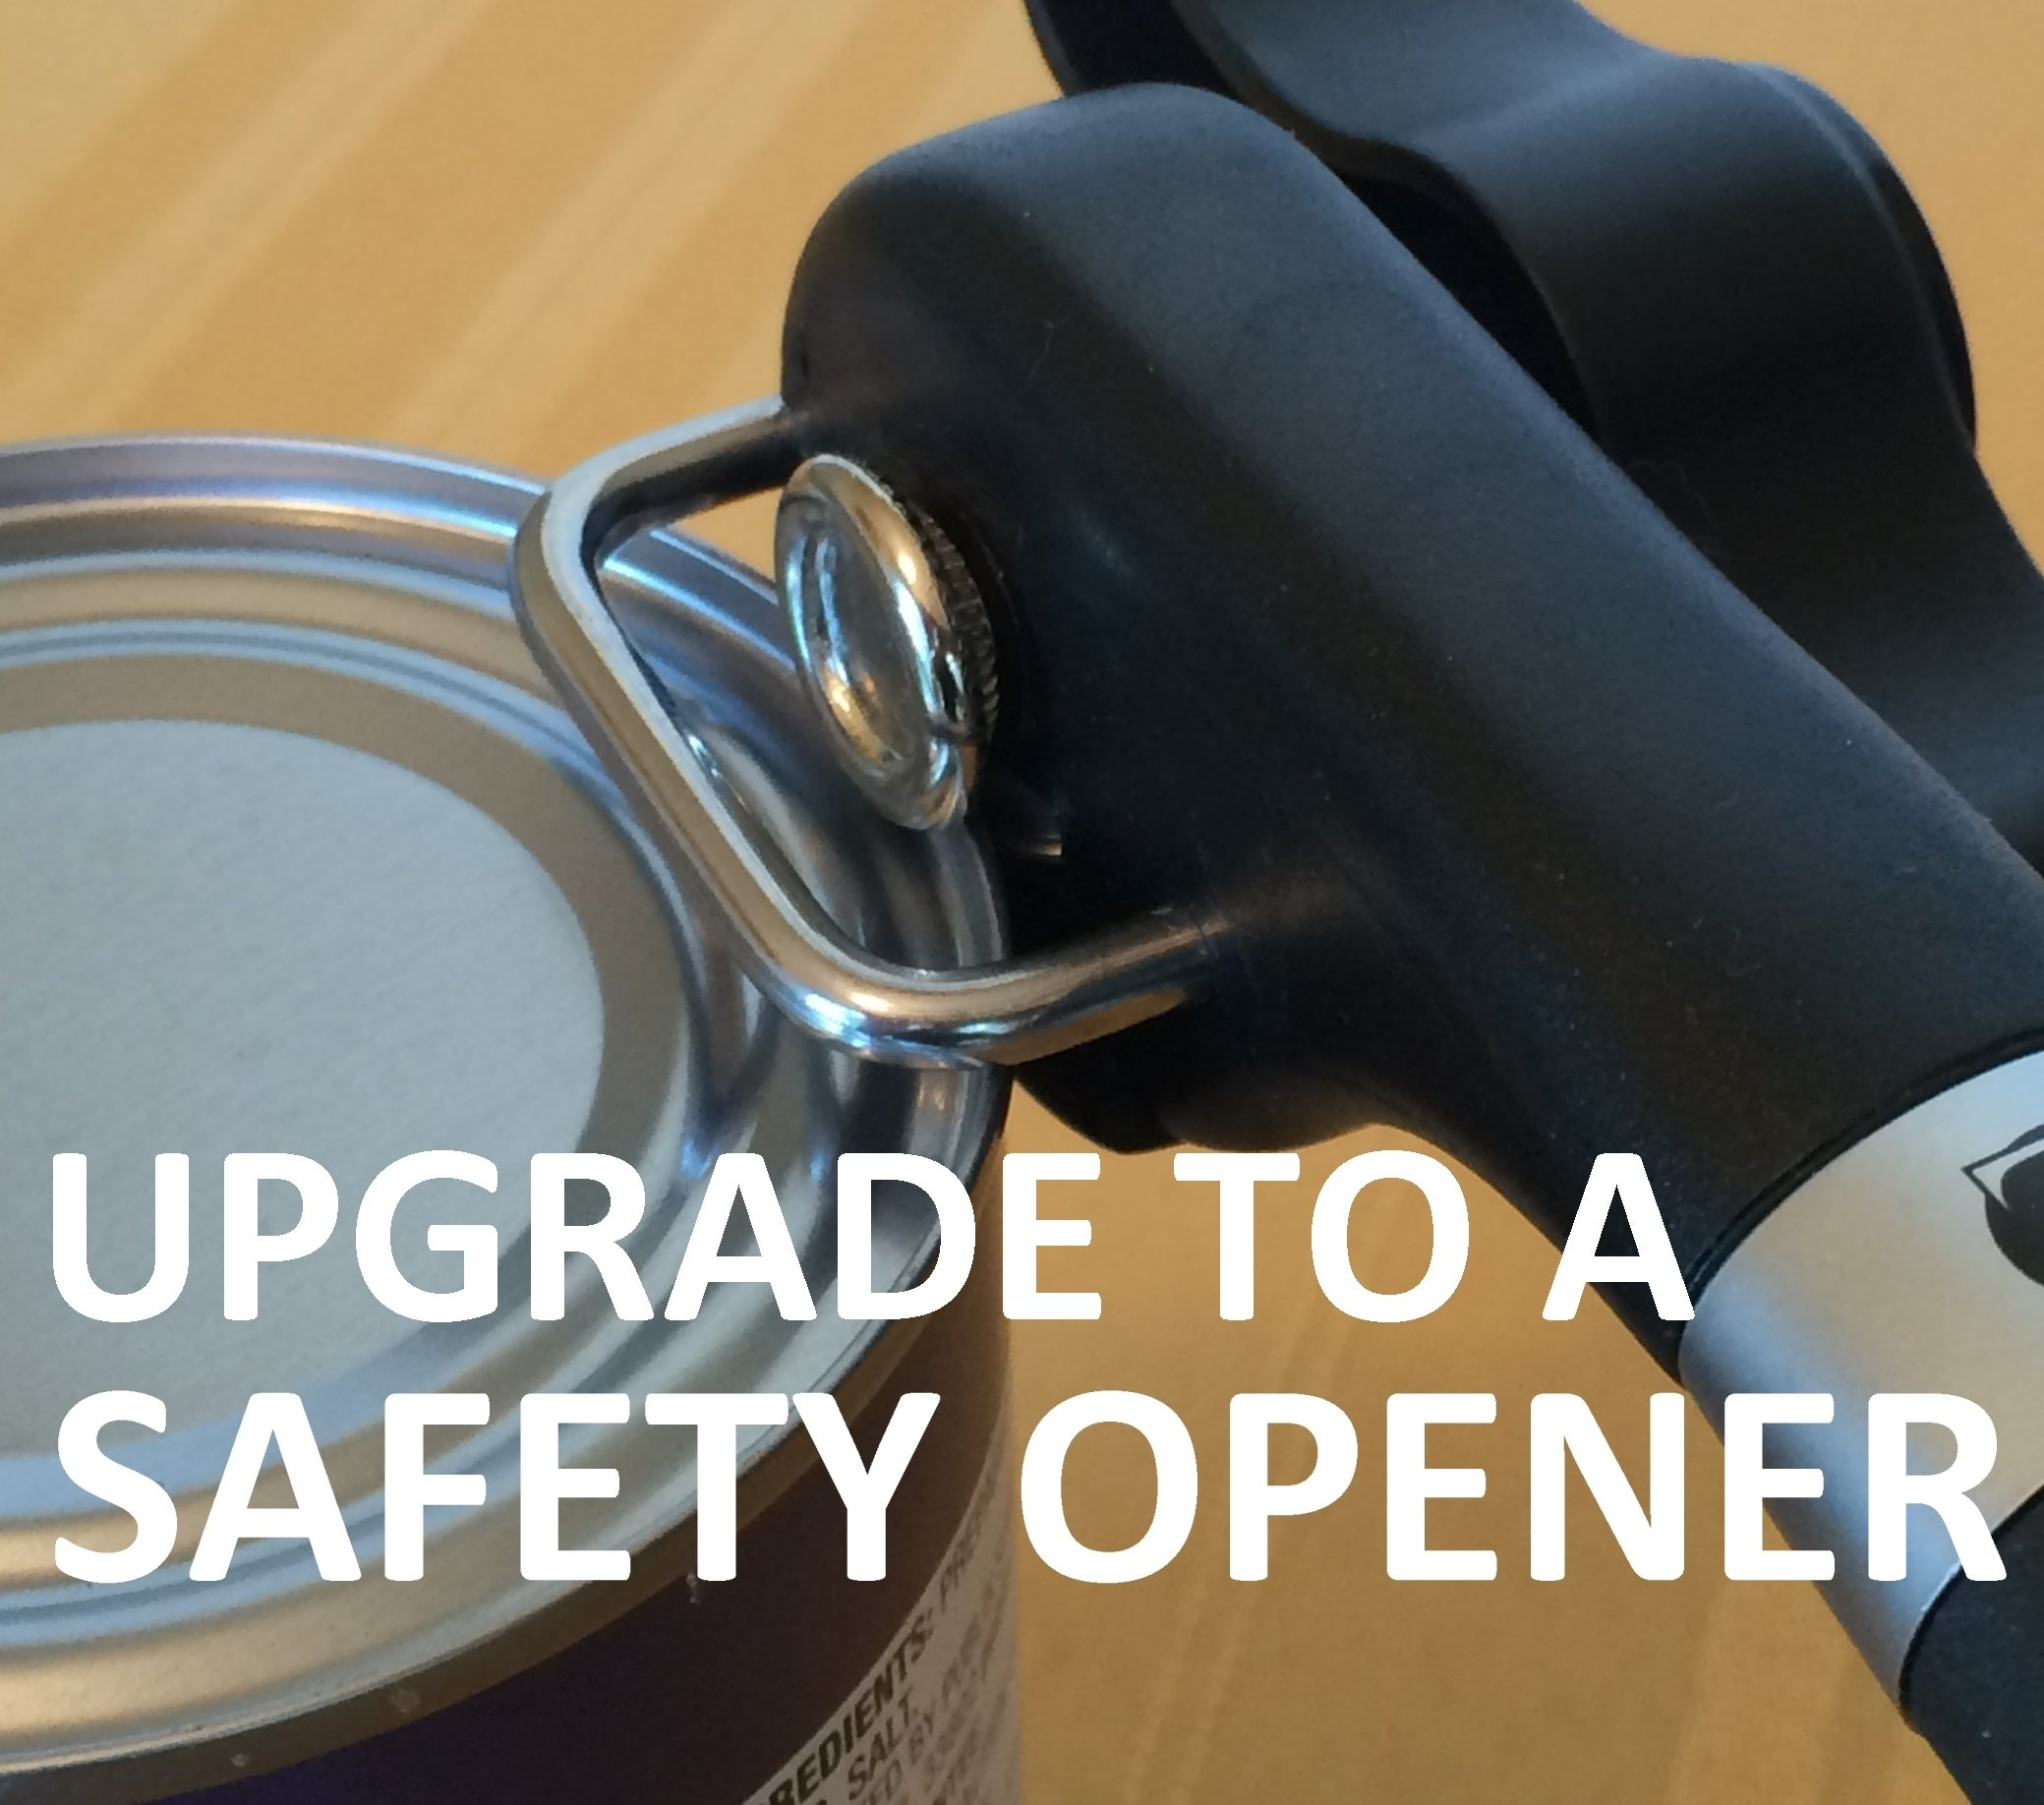 Hand Held Safety Manual Can Opener by Zulu Quality - Made of Dishwasher Safe Stainless Steel and Silicone - Side Cut Action Leaves Smooth Edge and Replaceable Lid by Zulu Quality (Image #6)